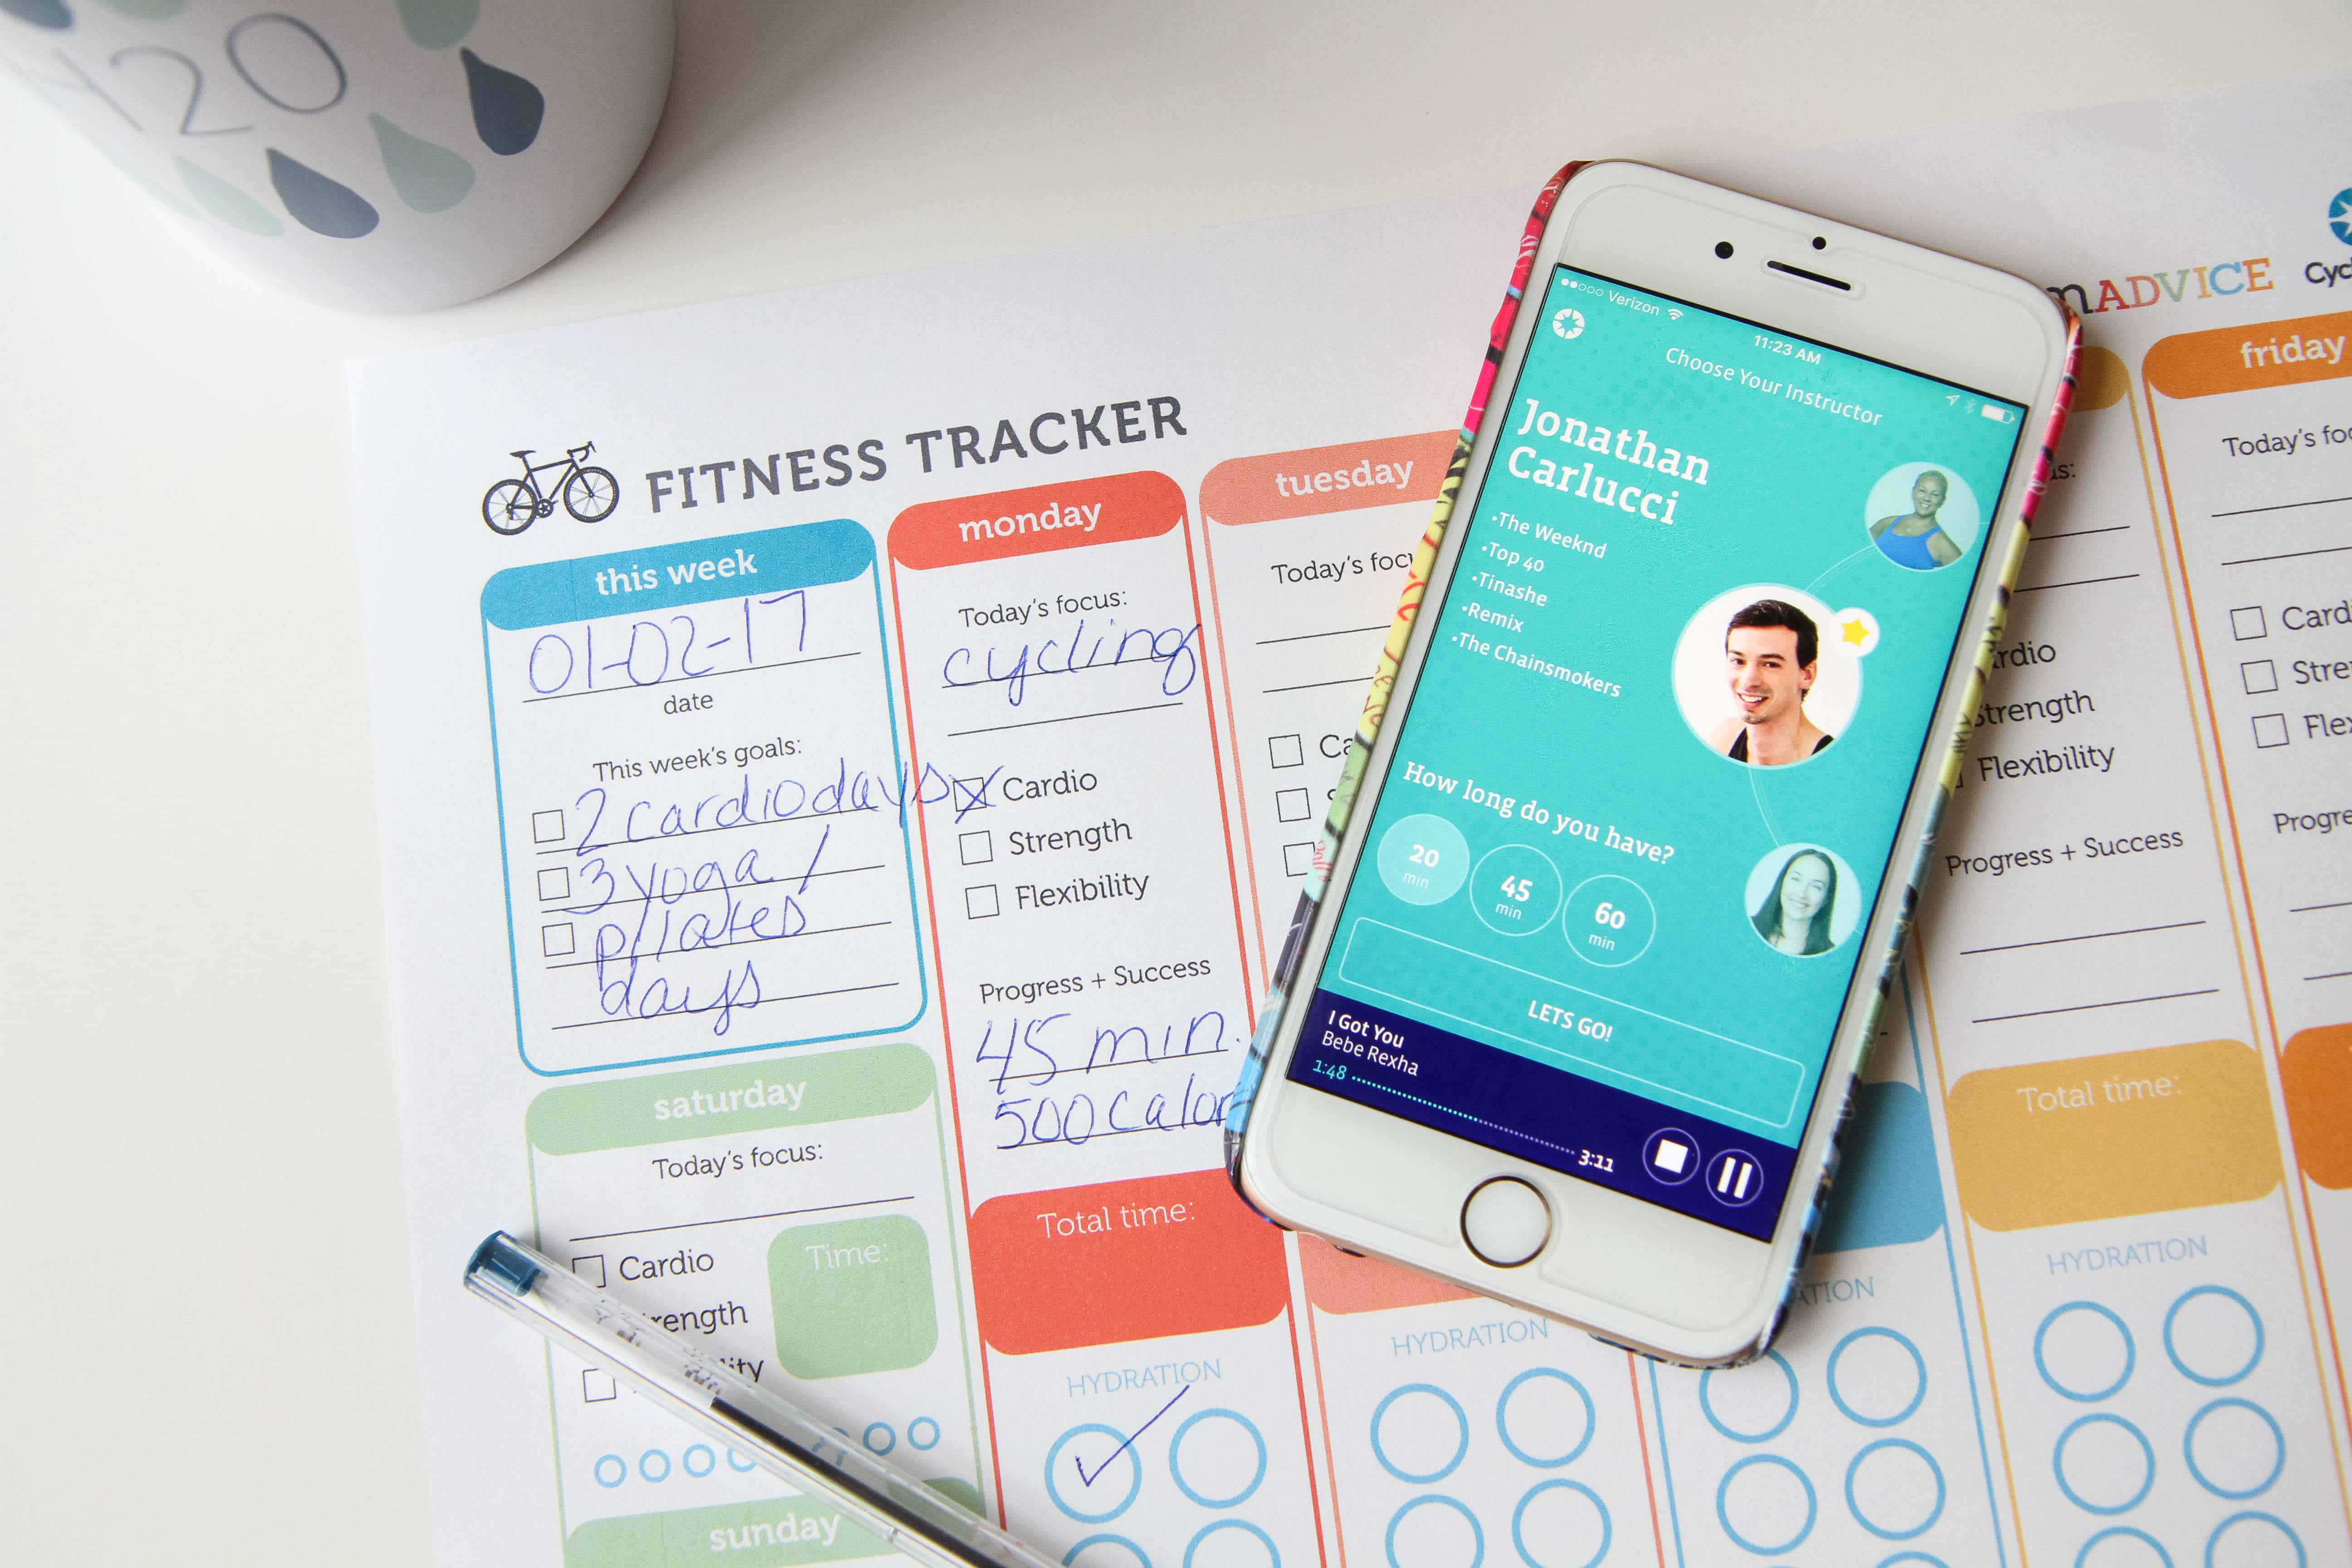 Boutique Workouts At Home (FREE Printable Fitness Tracker)